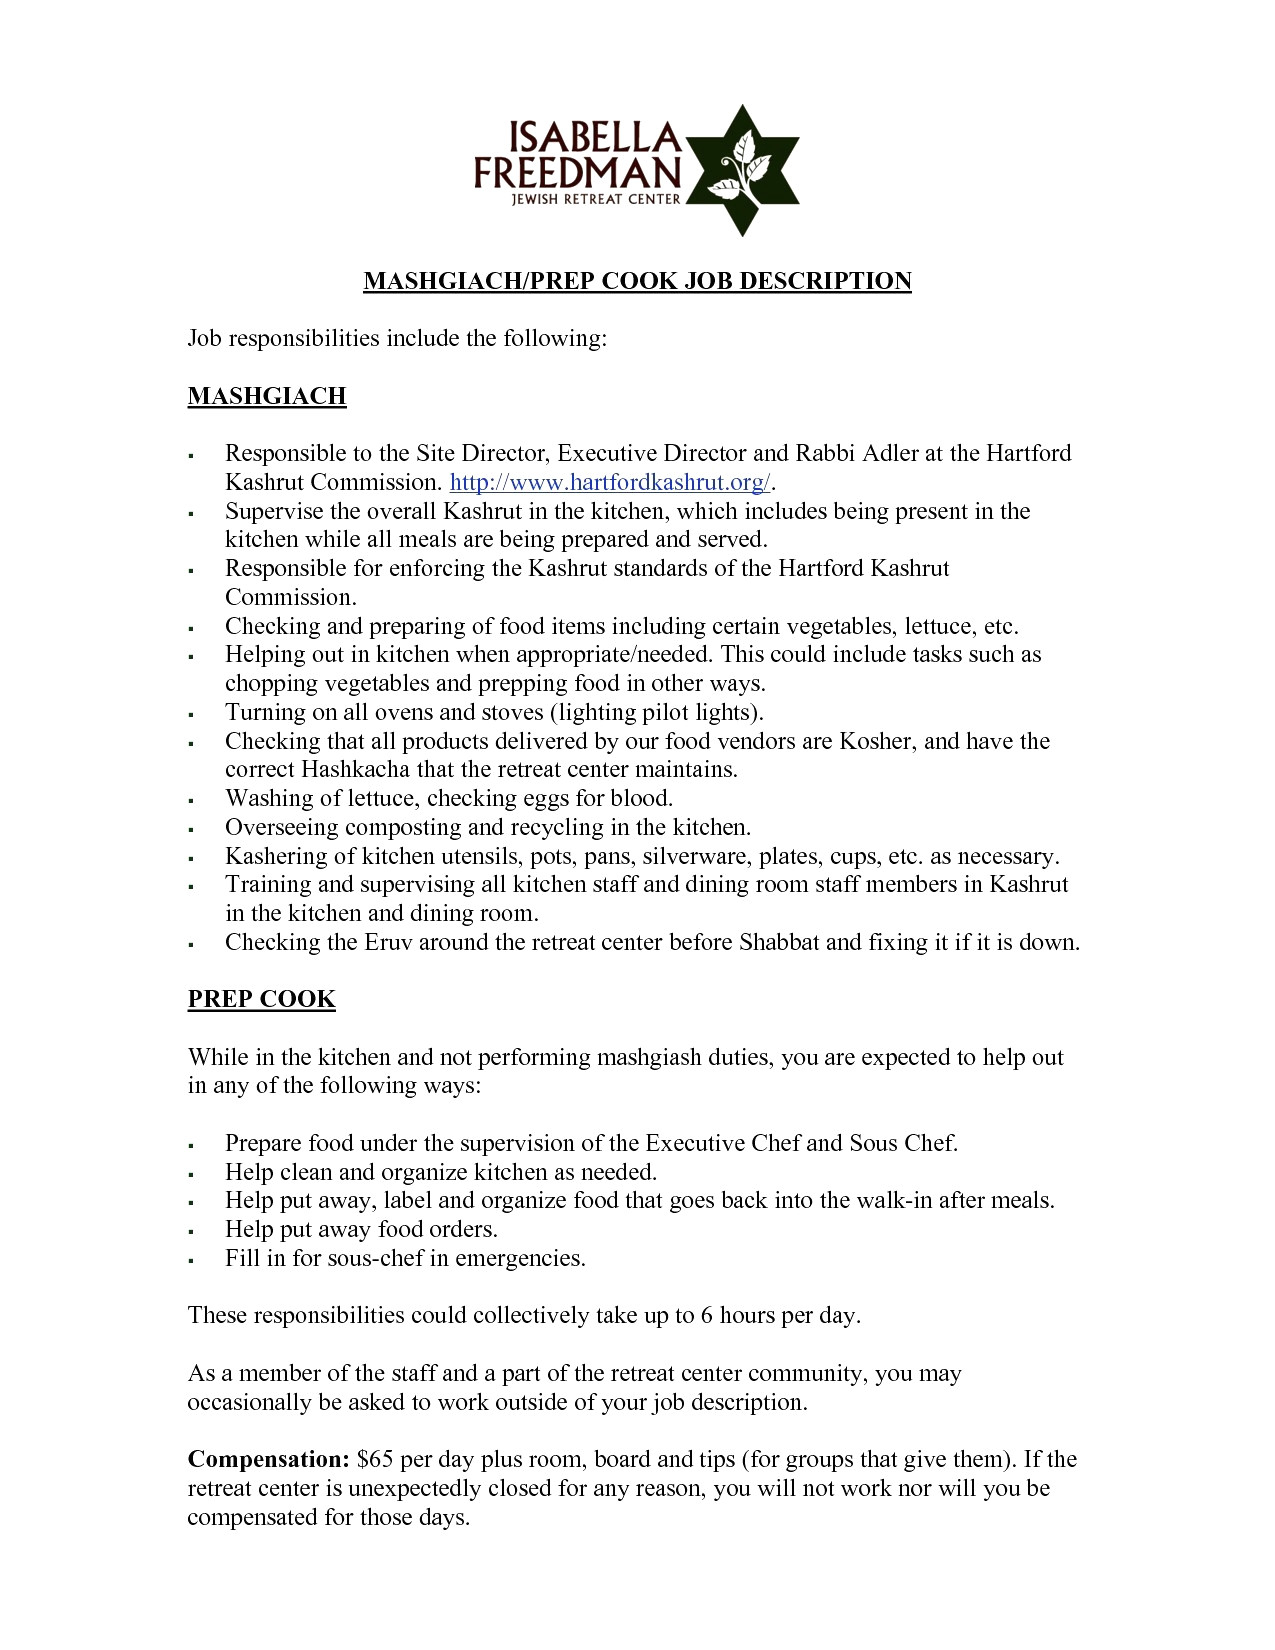 Marketing Manager Resume Template - 36 Concepts Marketing Skills Resume